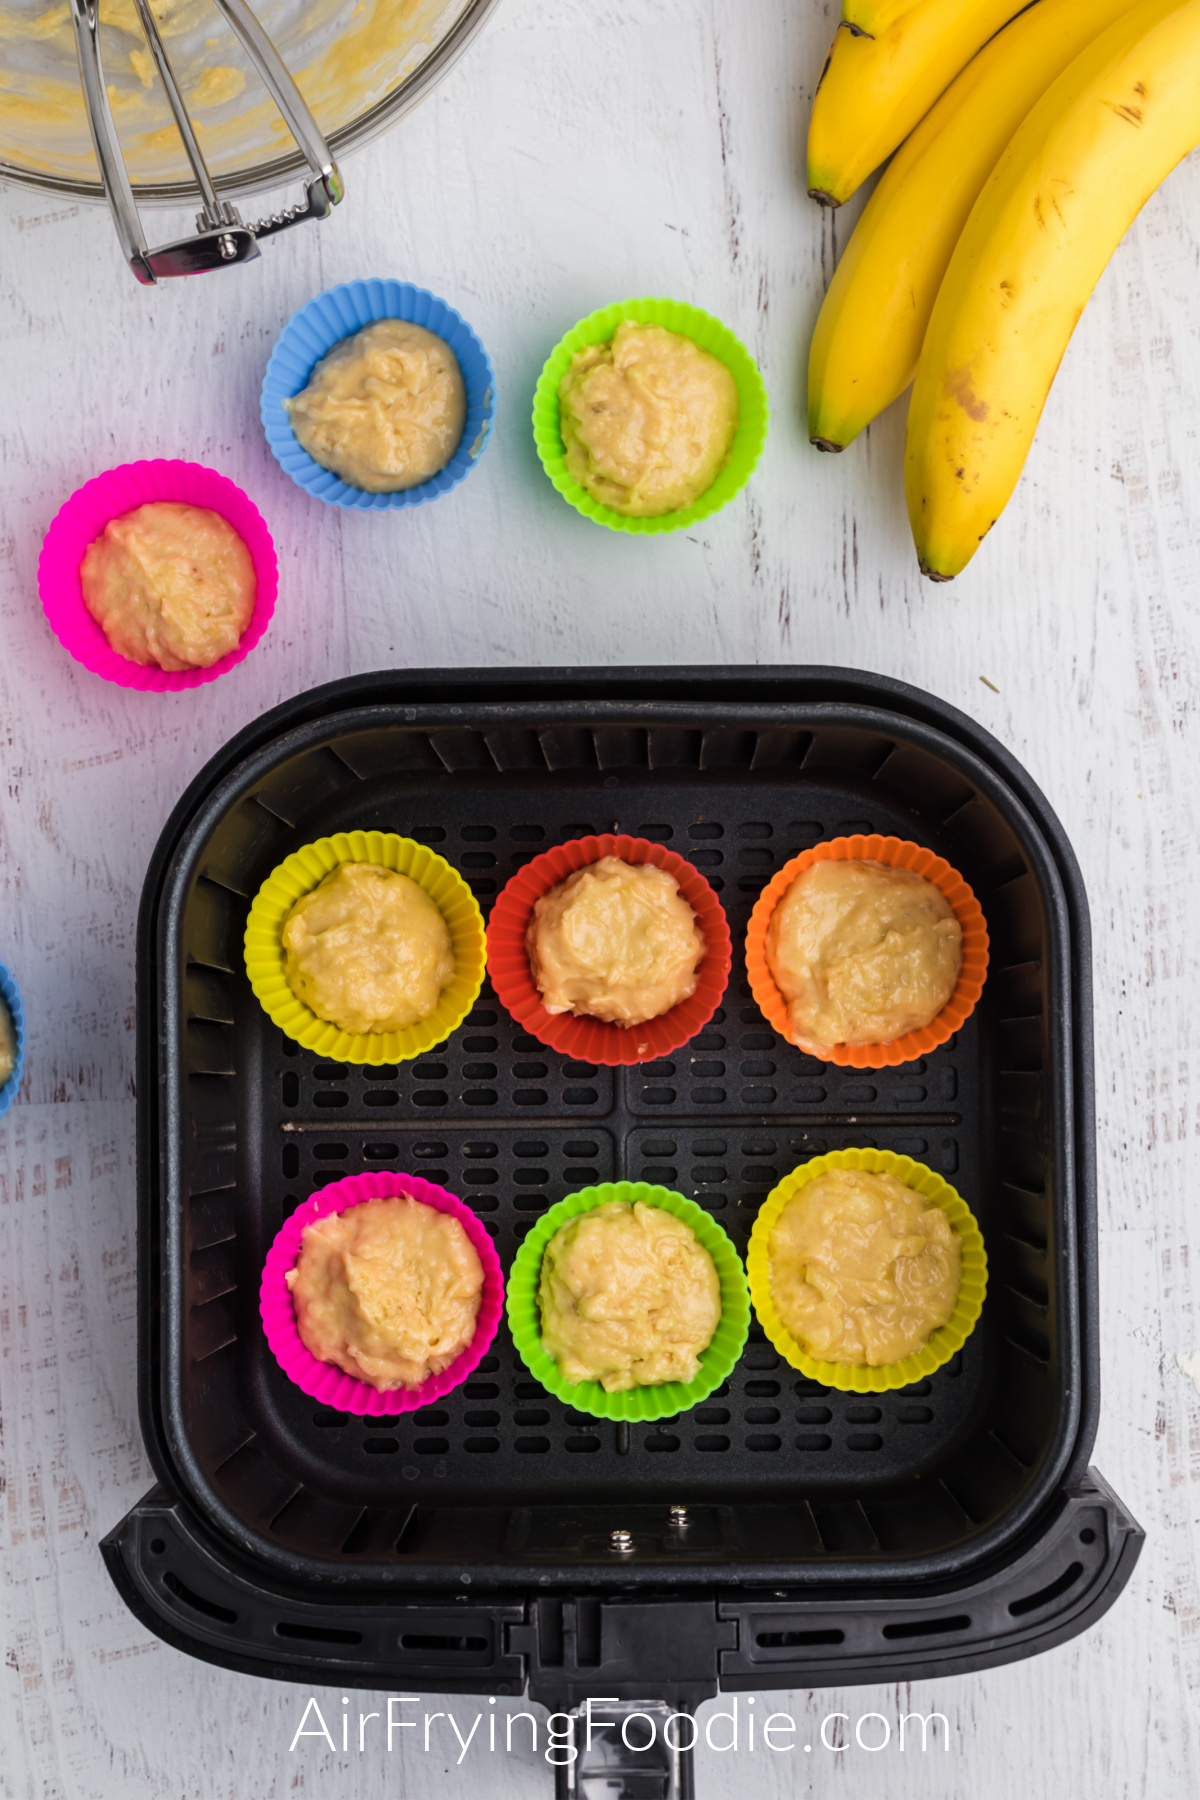 Air Fryer basket with silicone molds with banana muffin batter ready to cook.